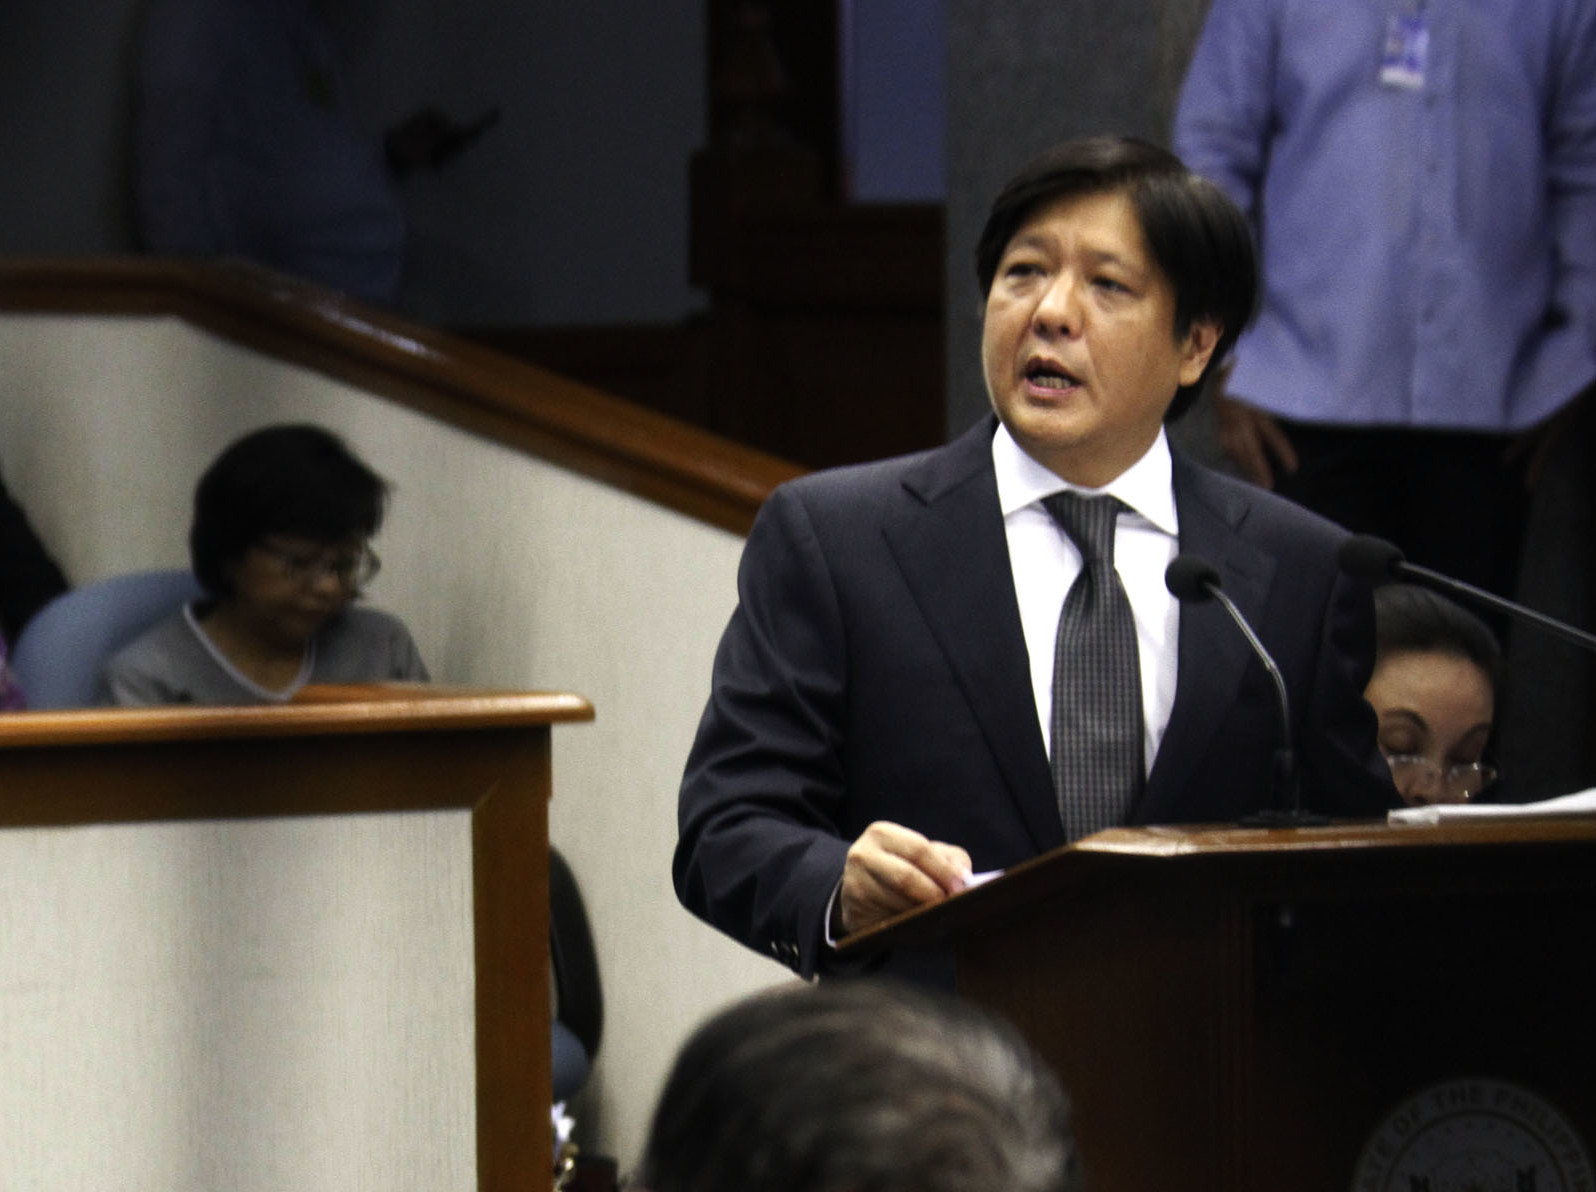 Senator Ferdinand R. Marcos Jr. (at rostrum) delivers his sponsorship speech on Senate Bill No. 2894 or the Proposed Bangsamoro Basic Law (BBL) at the Senate Session Hall on Wednesday (Aug. 12, 2015). (Avito C. Dalan / PNA)